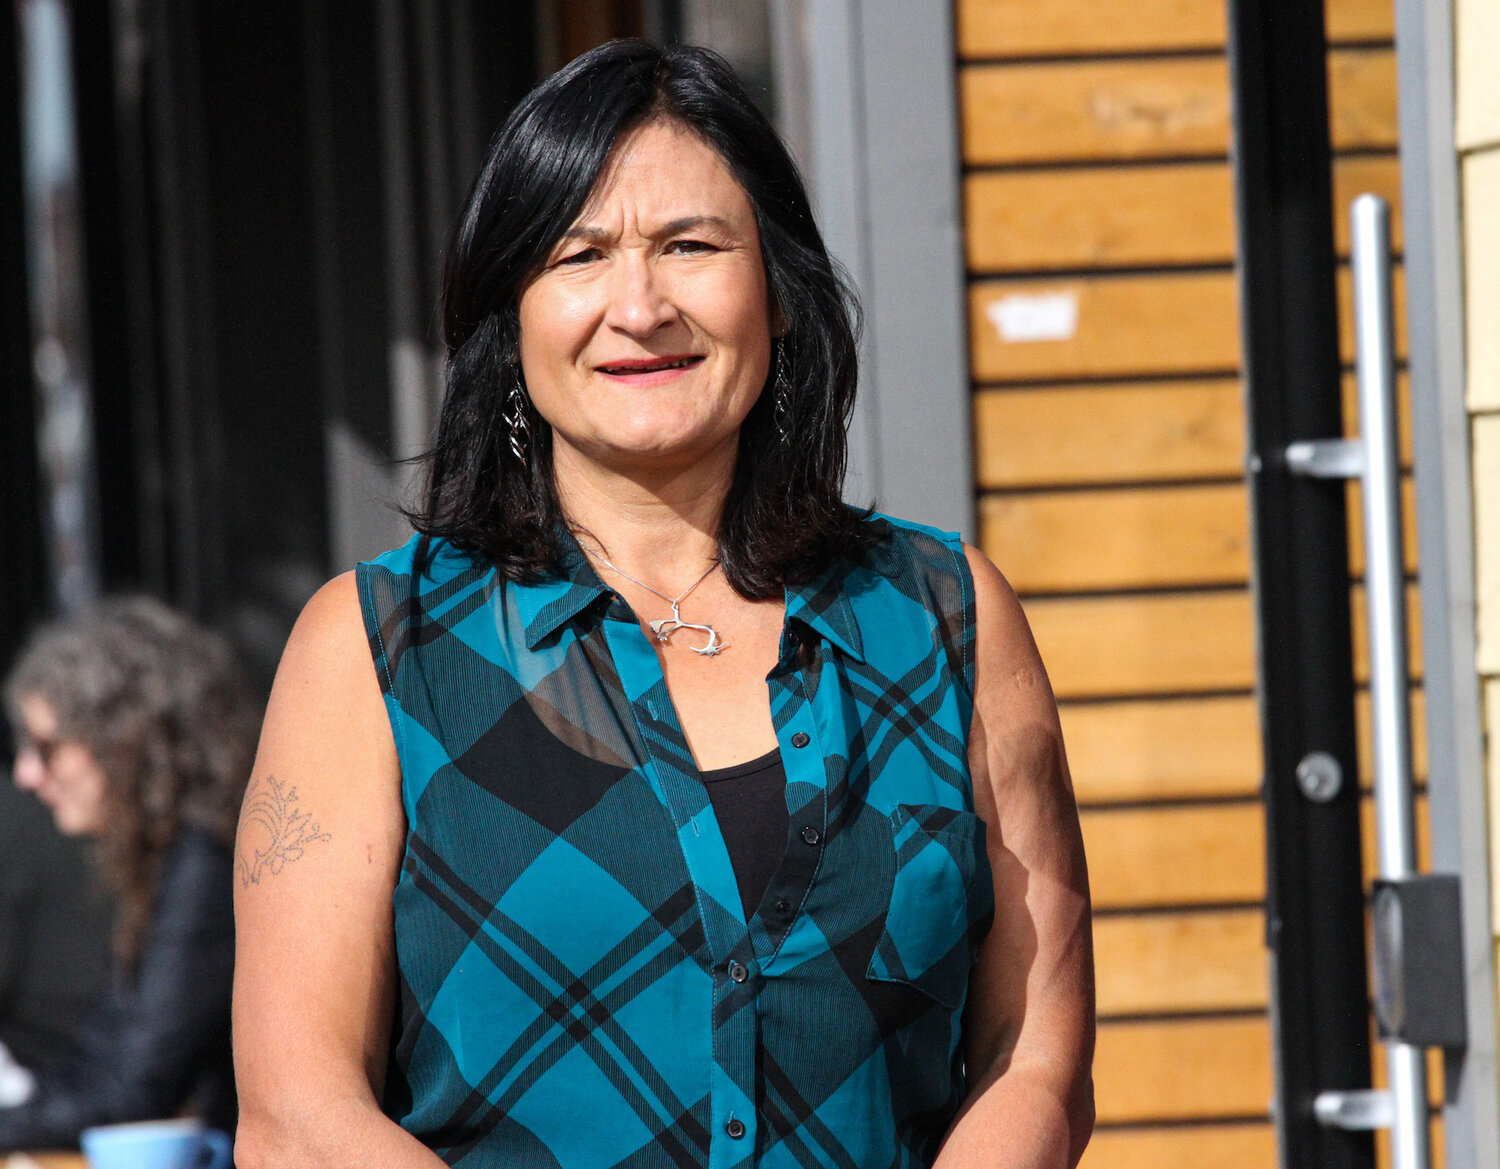 MLA Pauline Frost is from Old Crow. She maintains close ties with the community and travels there often. (Photo: Meaghan Brackenbury)